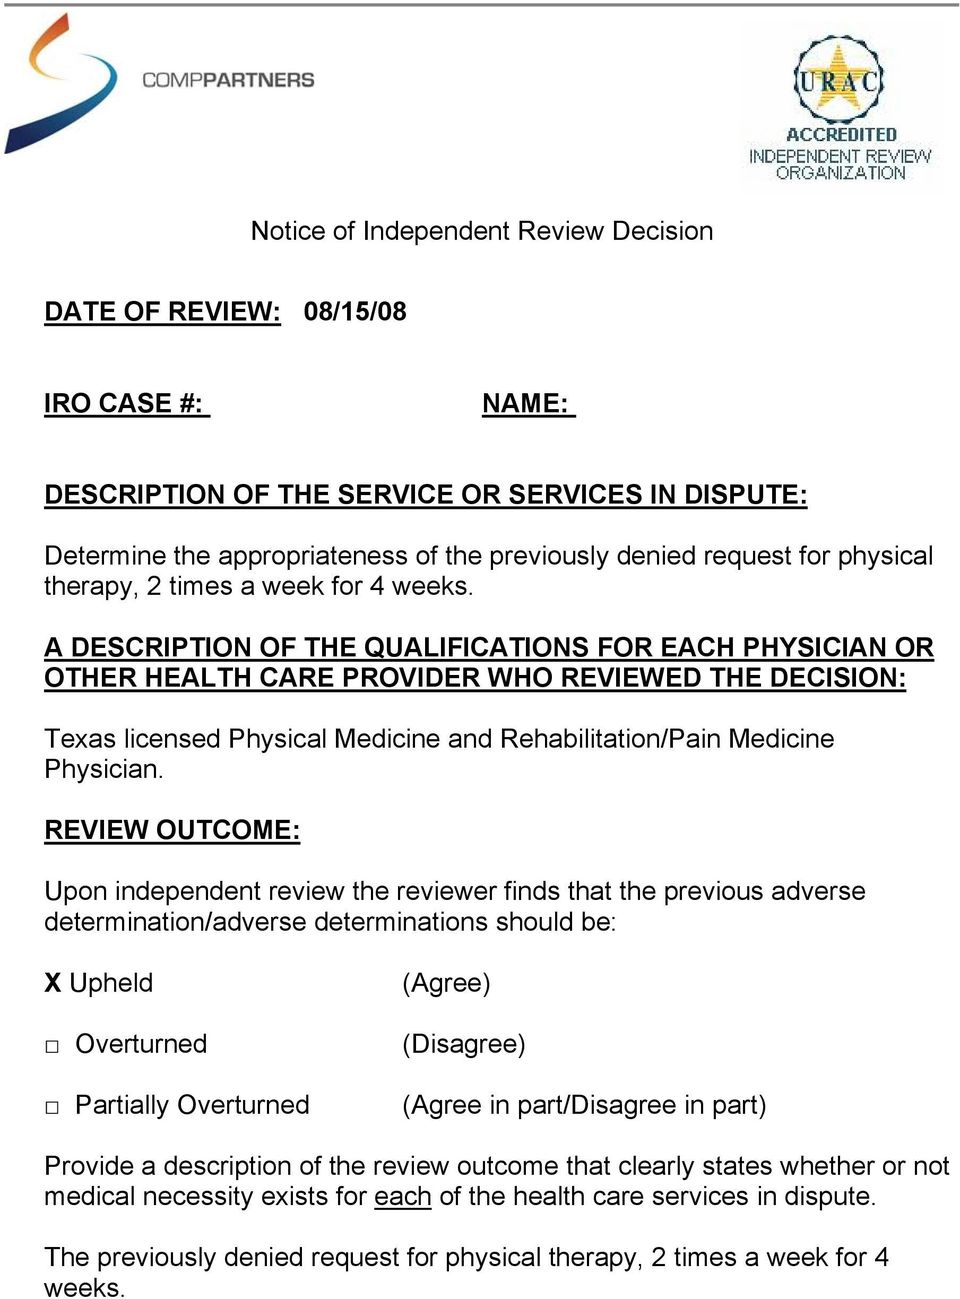 A DESCRIPTION OF THE QUALIFICATIONS FOR EACH PHYSICIAN OR OTHER HEALTH CARE PROVIDER WHO REVIEWED THE DECISION: Texas licensed Physical Medicine and Rehabilitation/Pain Medicine Physician.